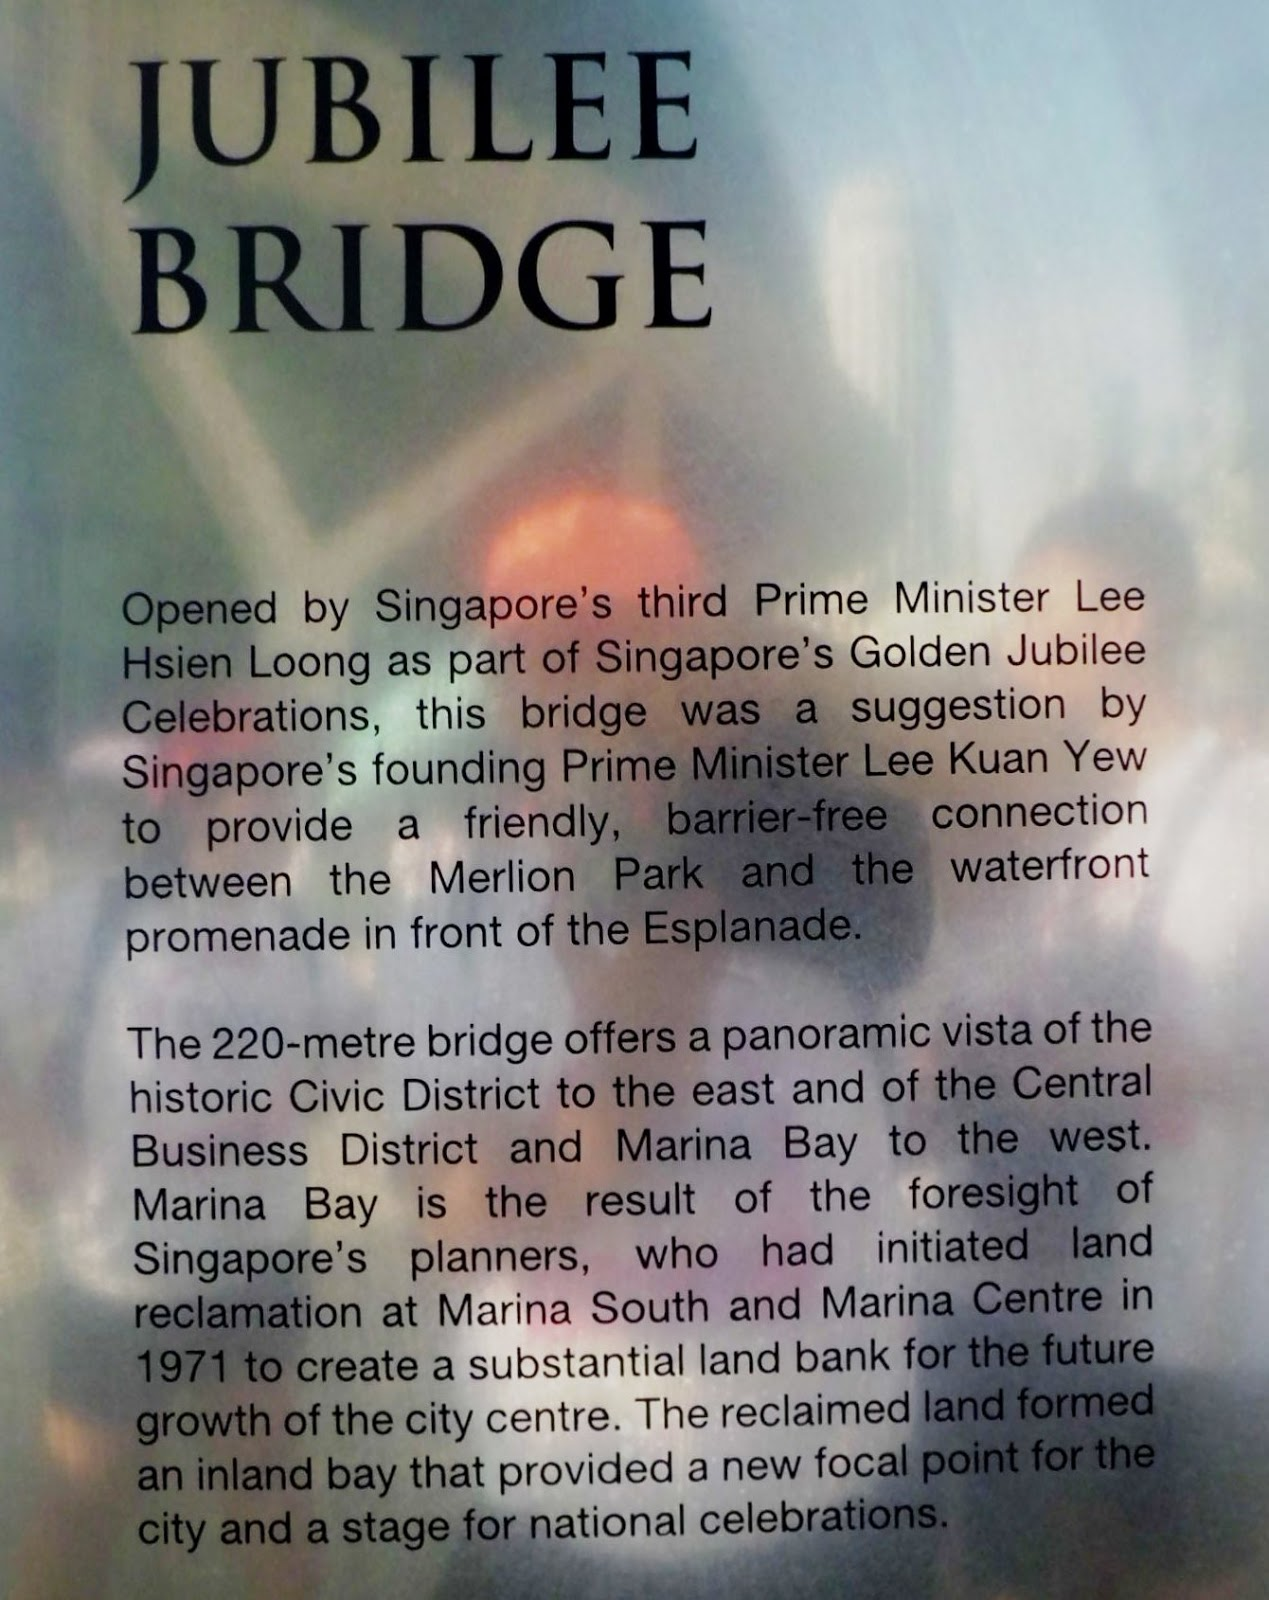 Mr Lee also launched the 220m Jubilee Bridge that connects the Merlion Park and the waterfront promenade by the Esplanade.